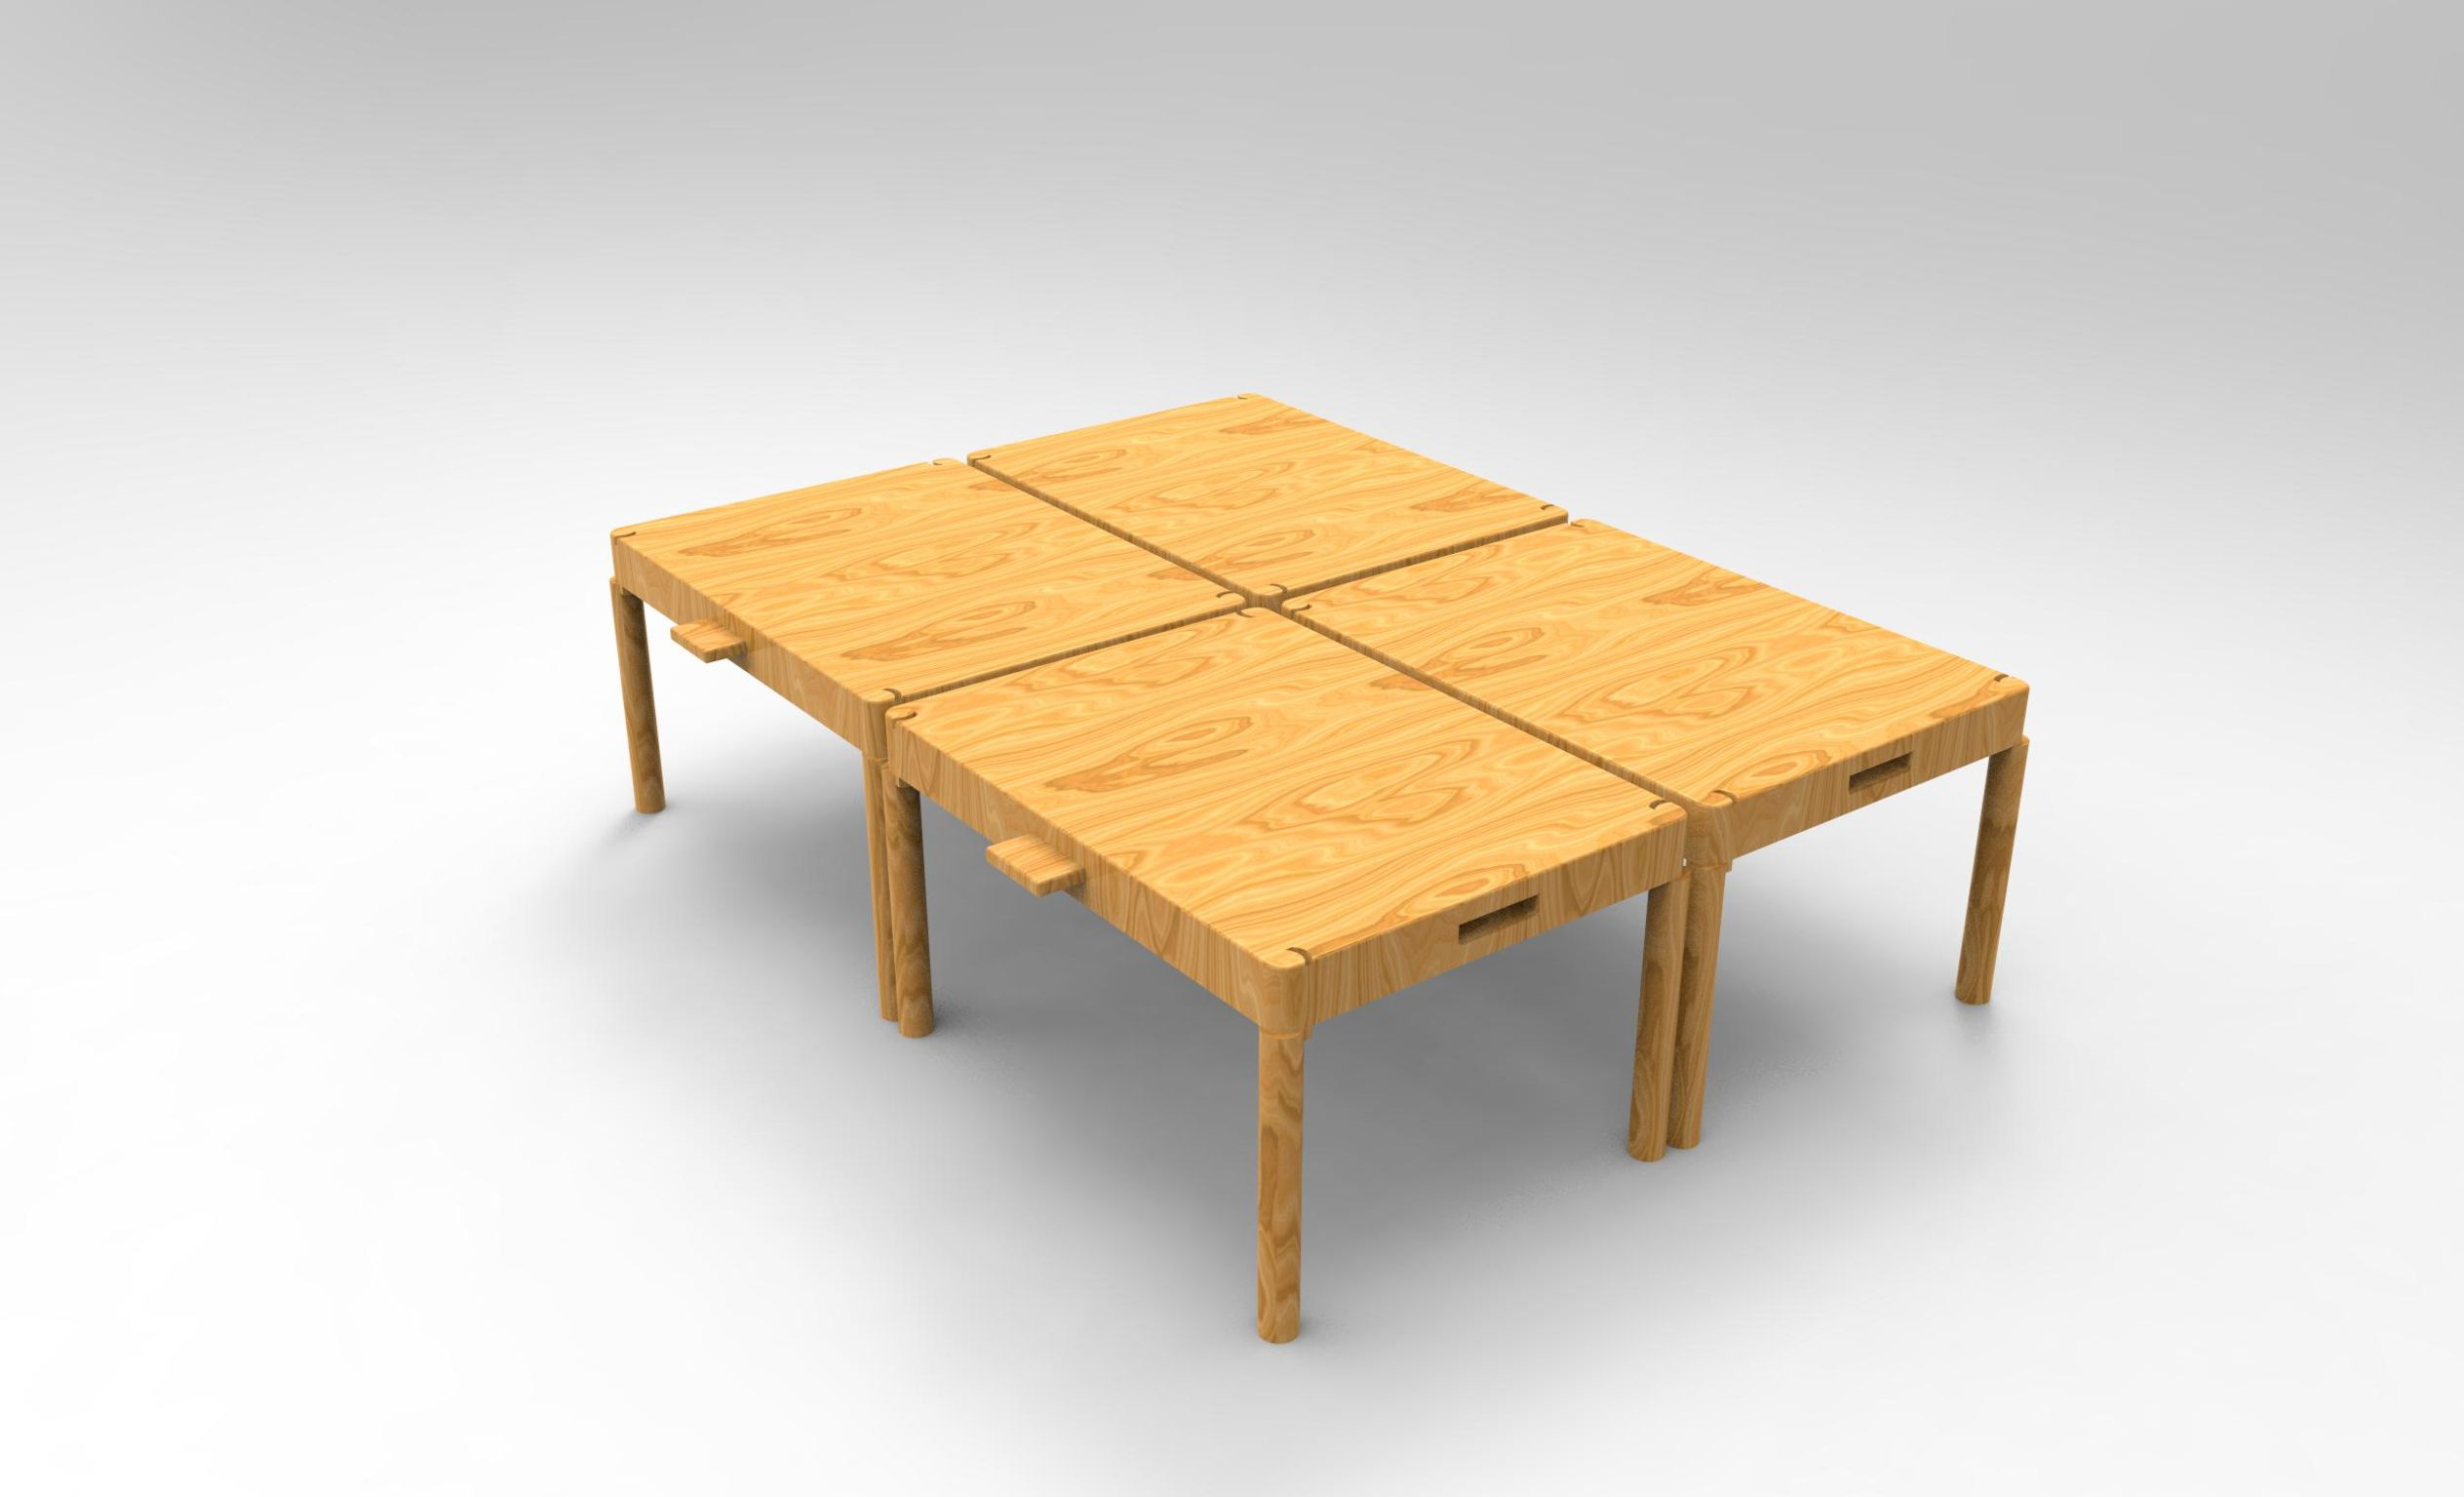 Stool table entry if world design guide for Table design guidelines